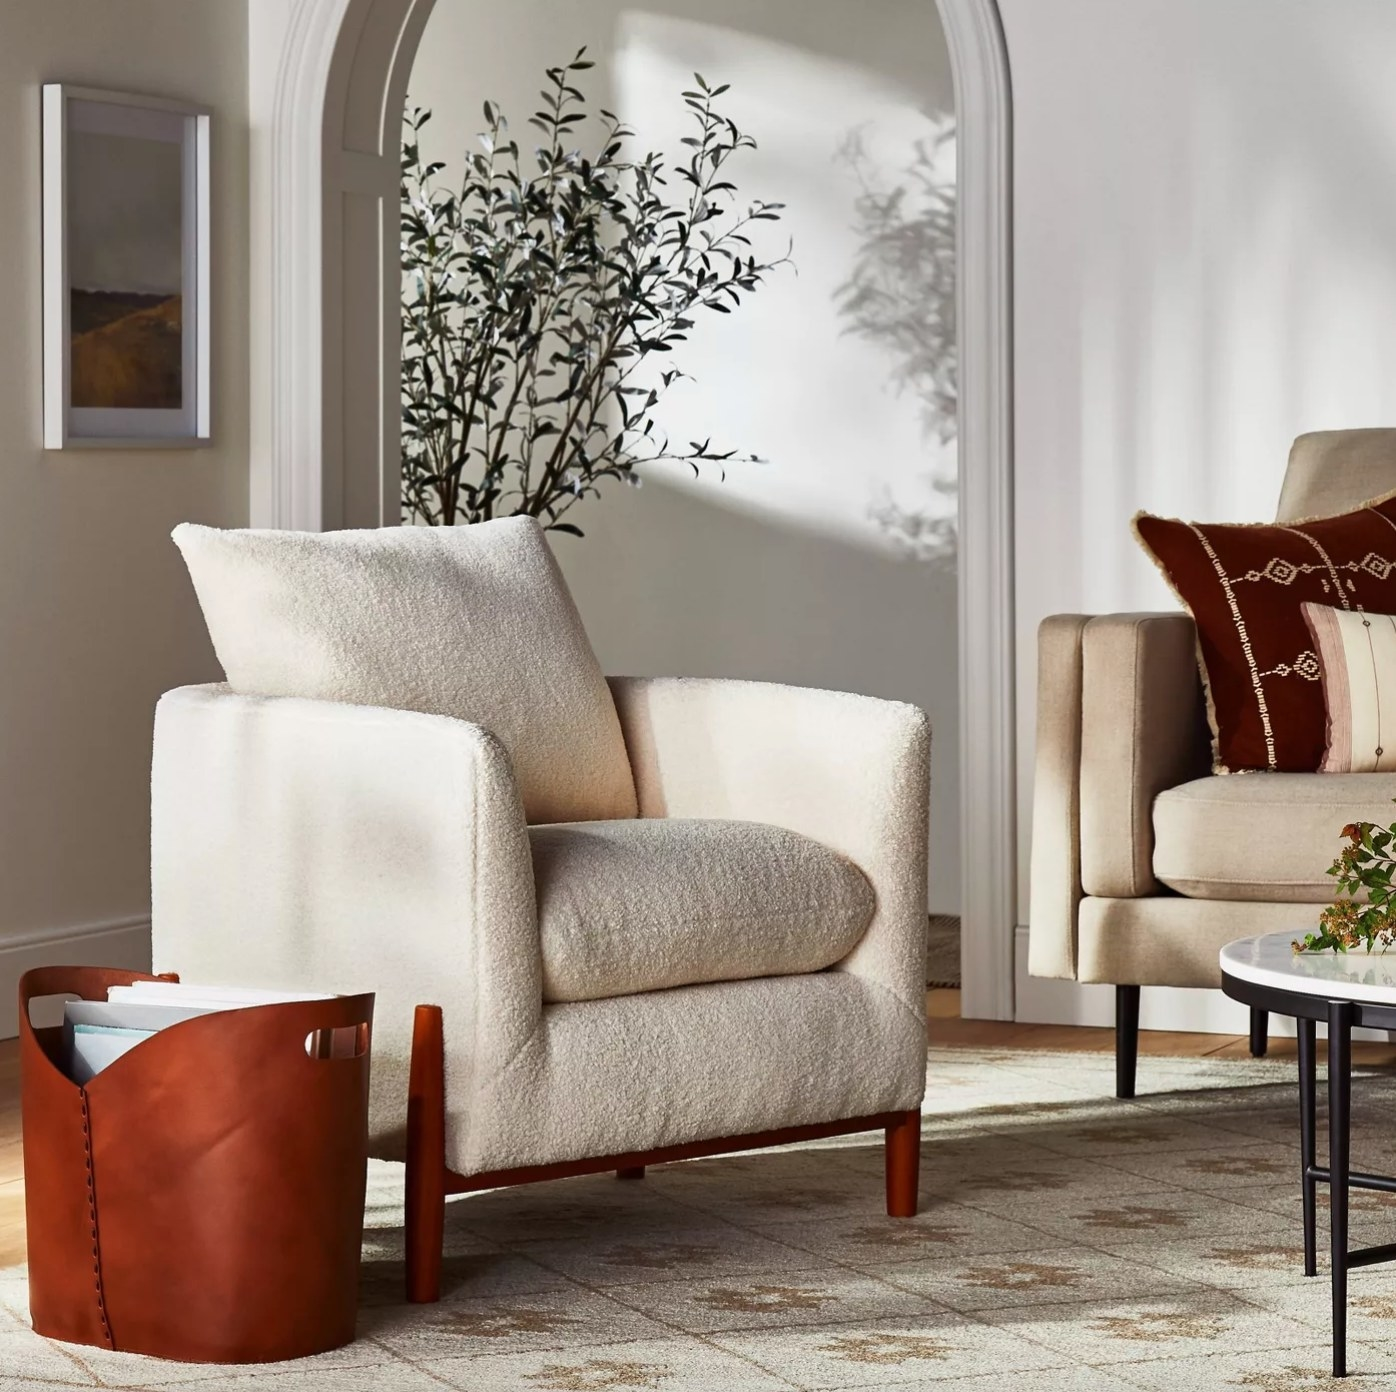 The accent chair with wood legs and beige seat